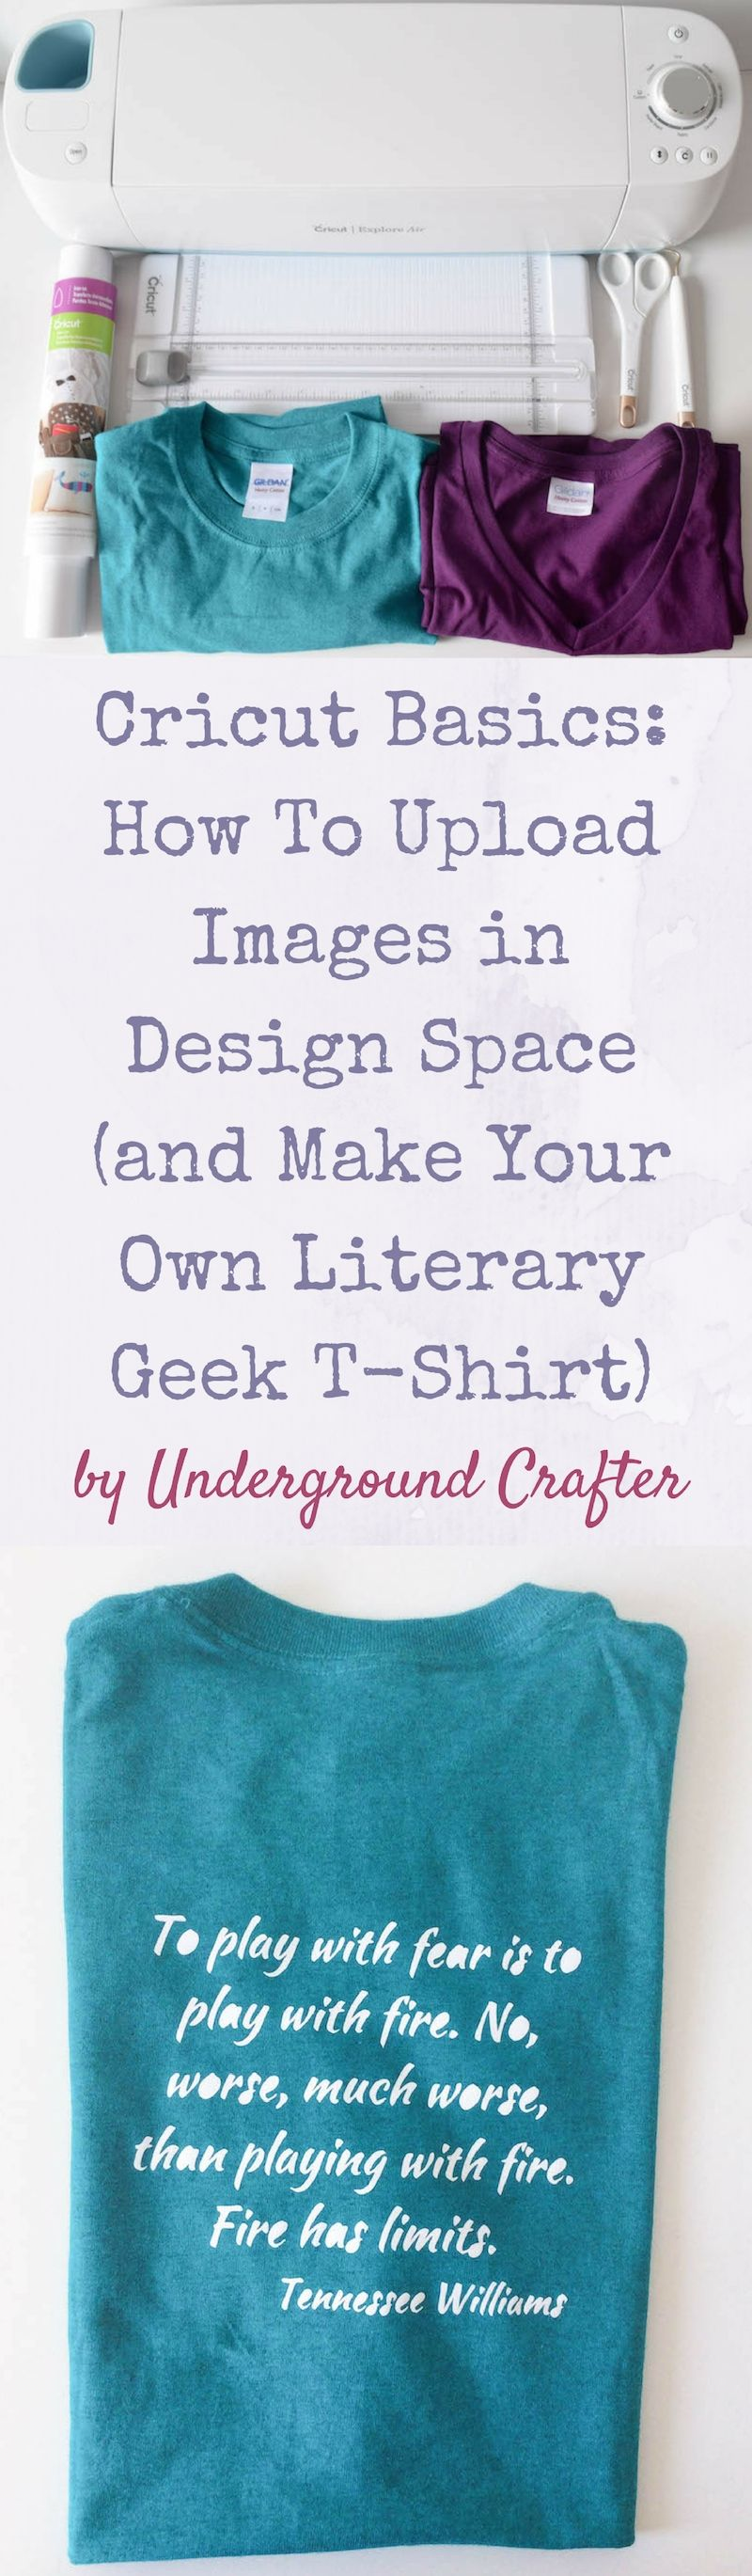 Design t shirt upload picture - Cricut Basics How To Upload Images In Design Space And Make Your Own Literary